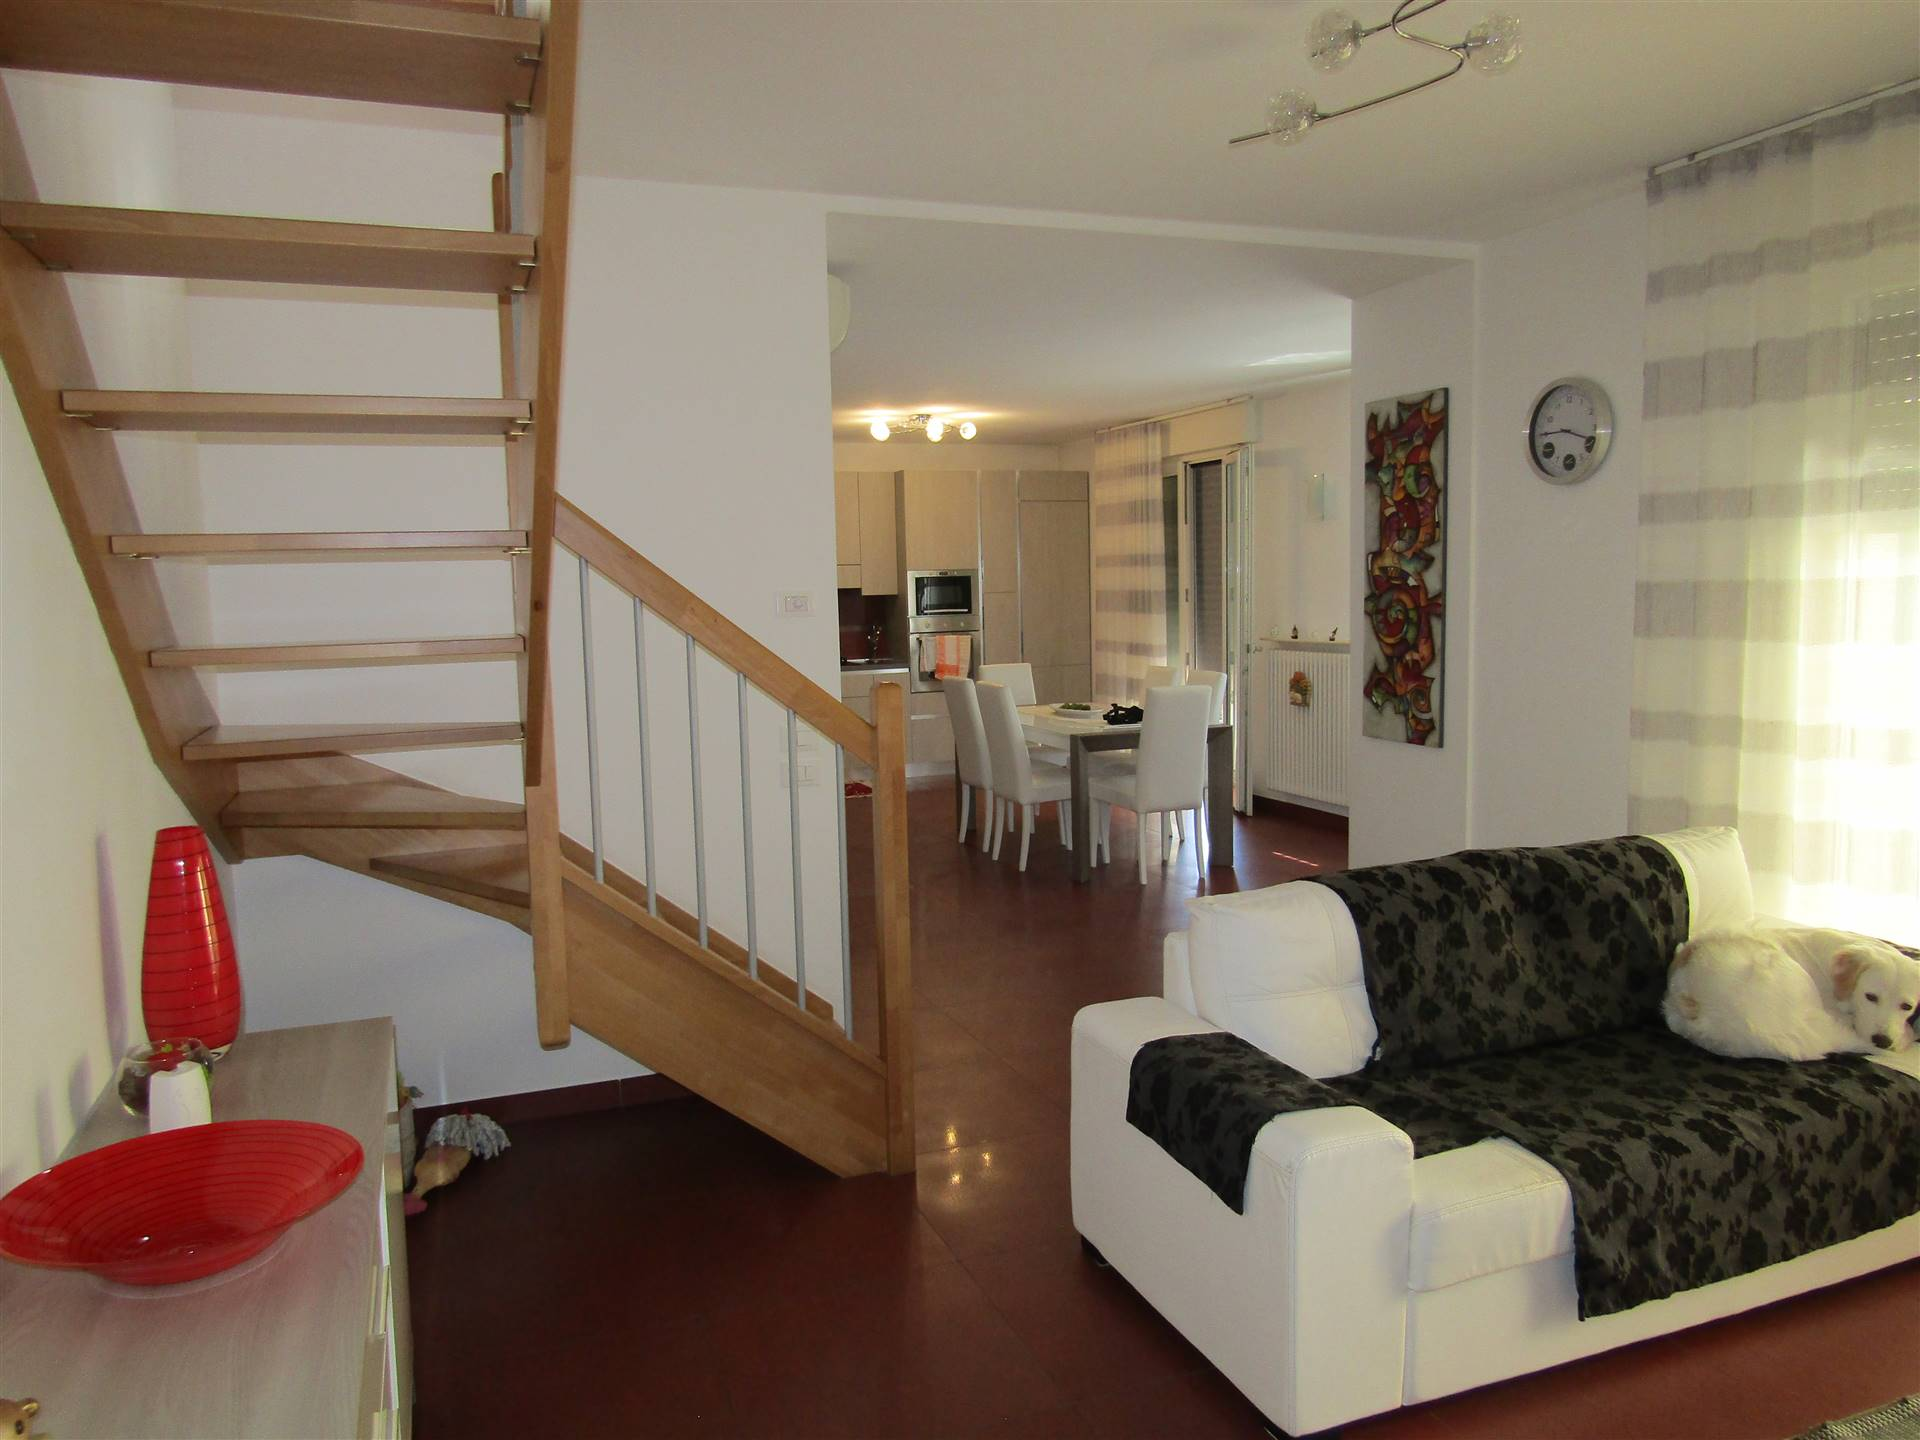 FOSSA, SPINEA, Apartment for sale of 173 Sq. mt., Excellent Condition, Heating Individual heating system, Energetic class: C, placed at 1° on 3, composed by: 5 Rooms, Kitchenette, , 2 Bedrooms, 2